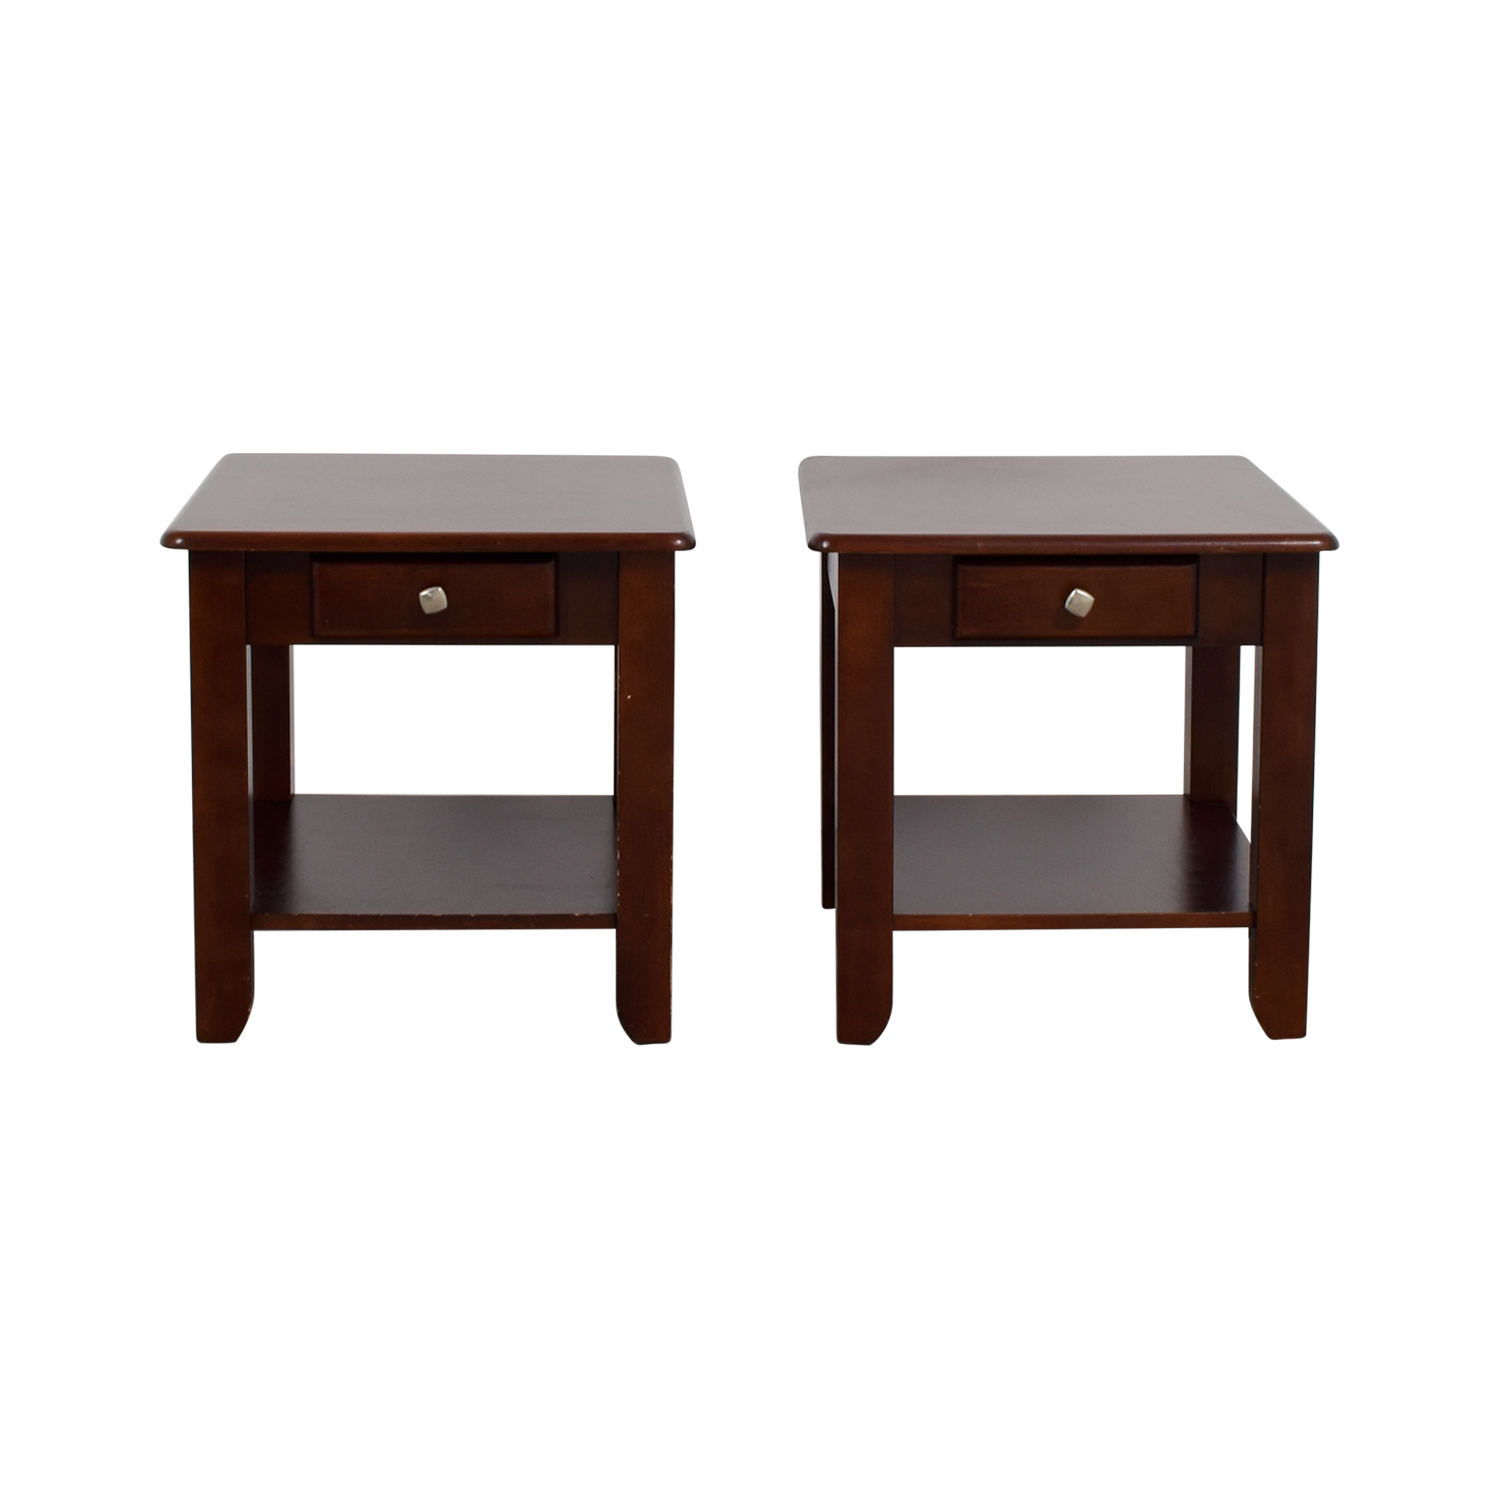 Buy Raymour And Flanigan Used Furniture On Sale